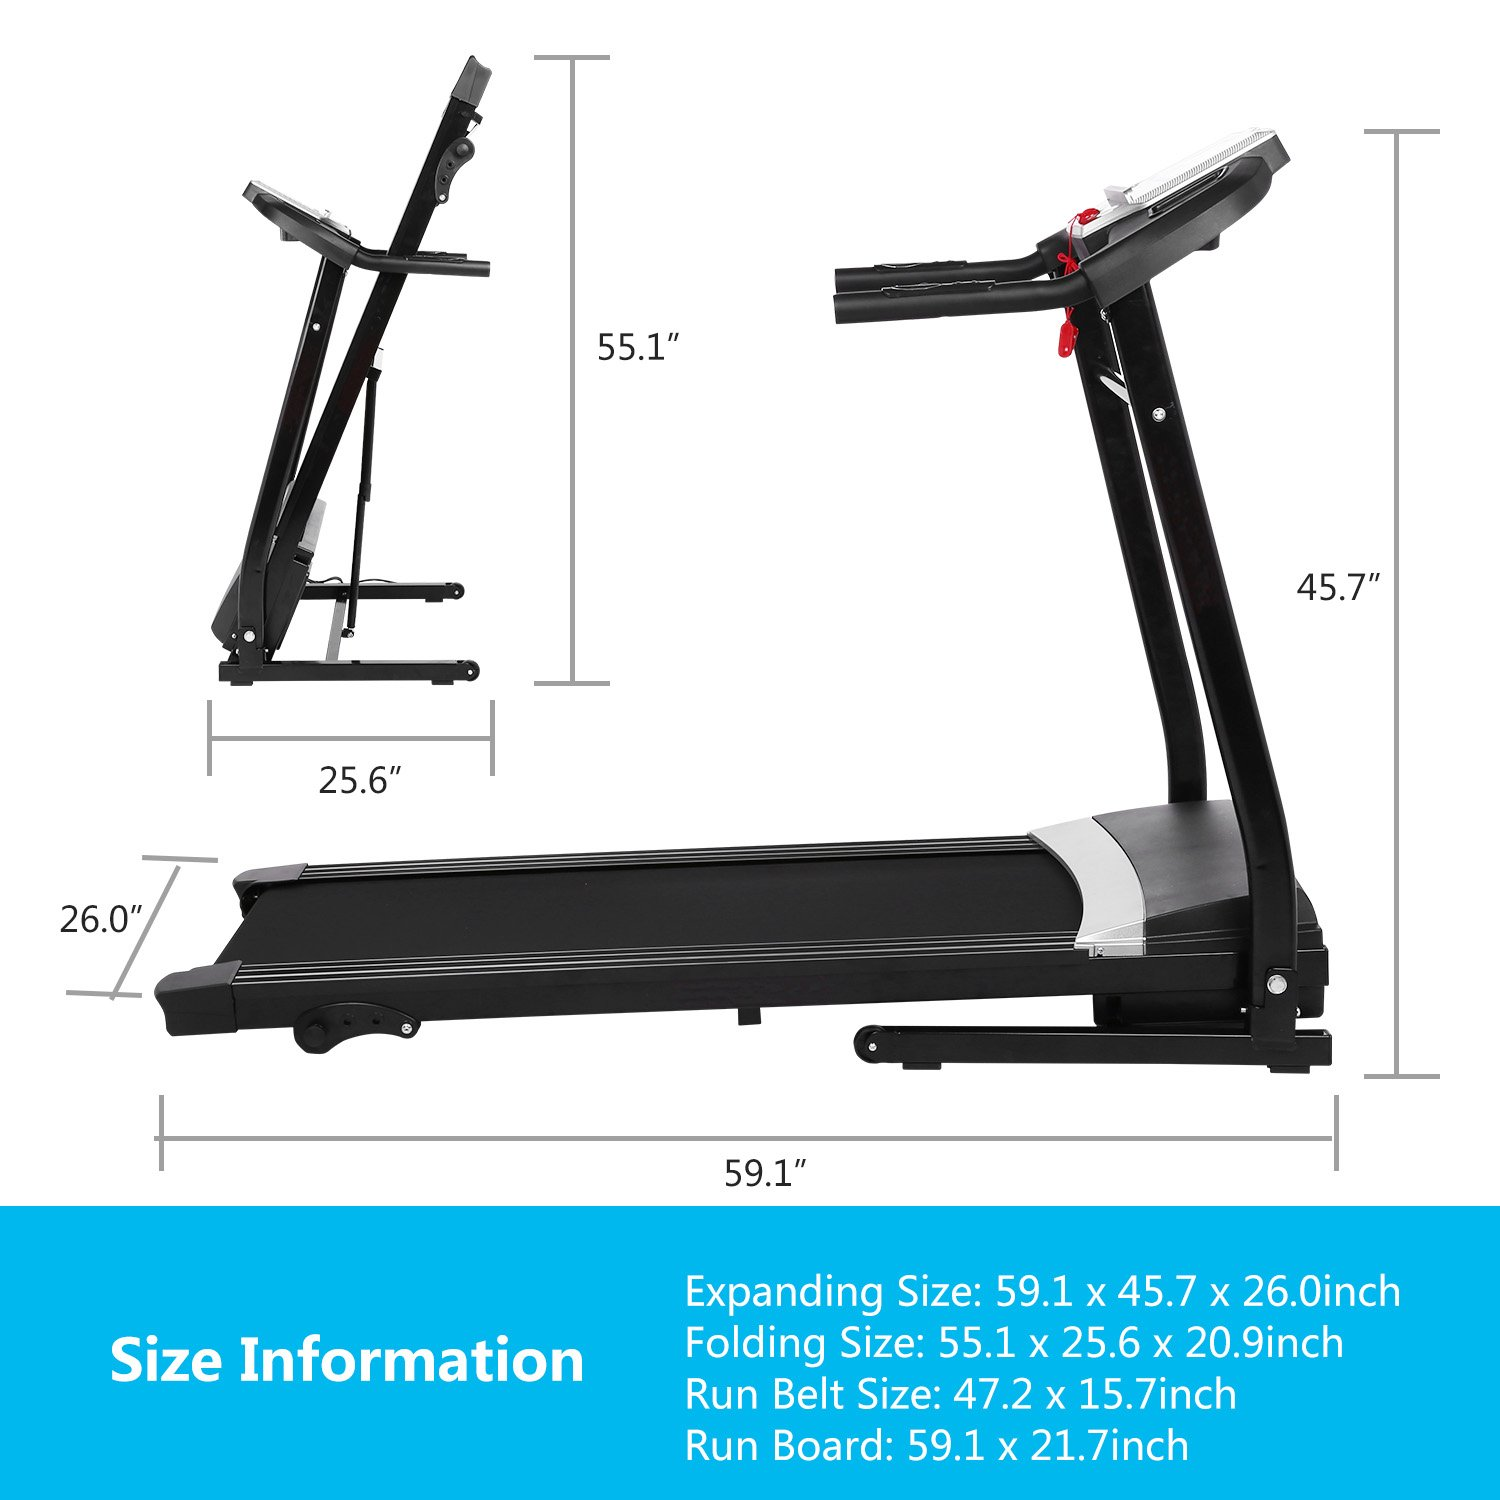 Miageek Fitness Folding Electric Jogging Treadmills with Smartphone APP Control, Walking Running Exercise Machine Incline Trainer Equipment Easy Assembly by Miageek (Image #3)